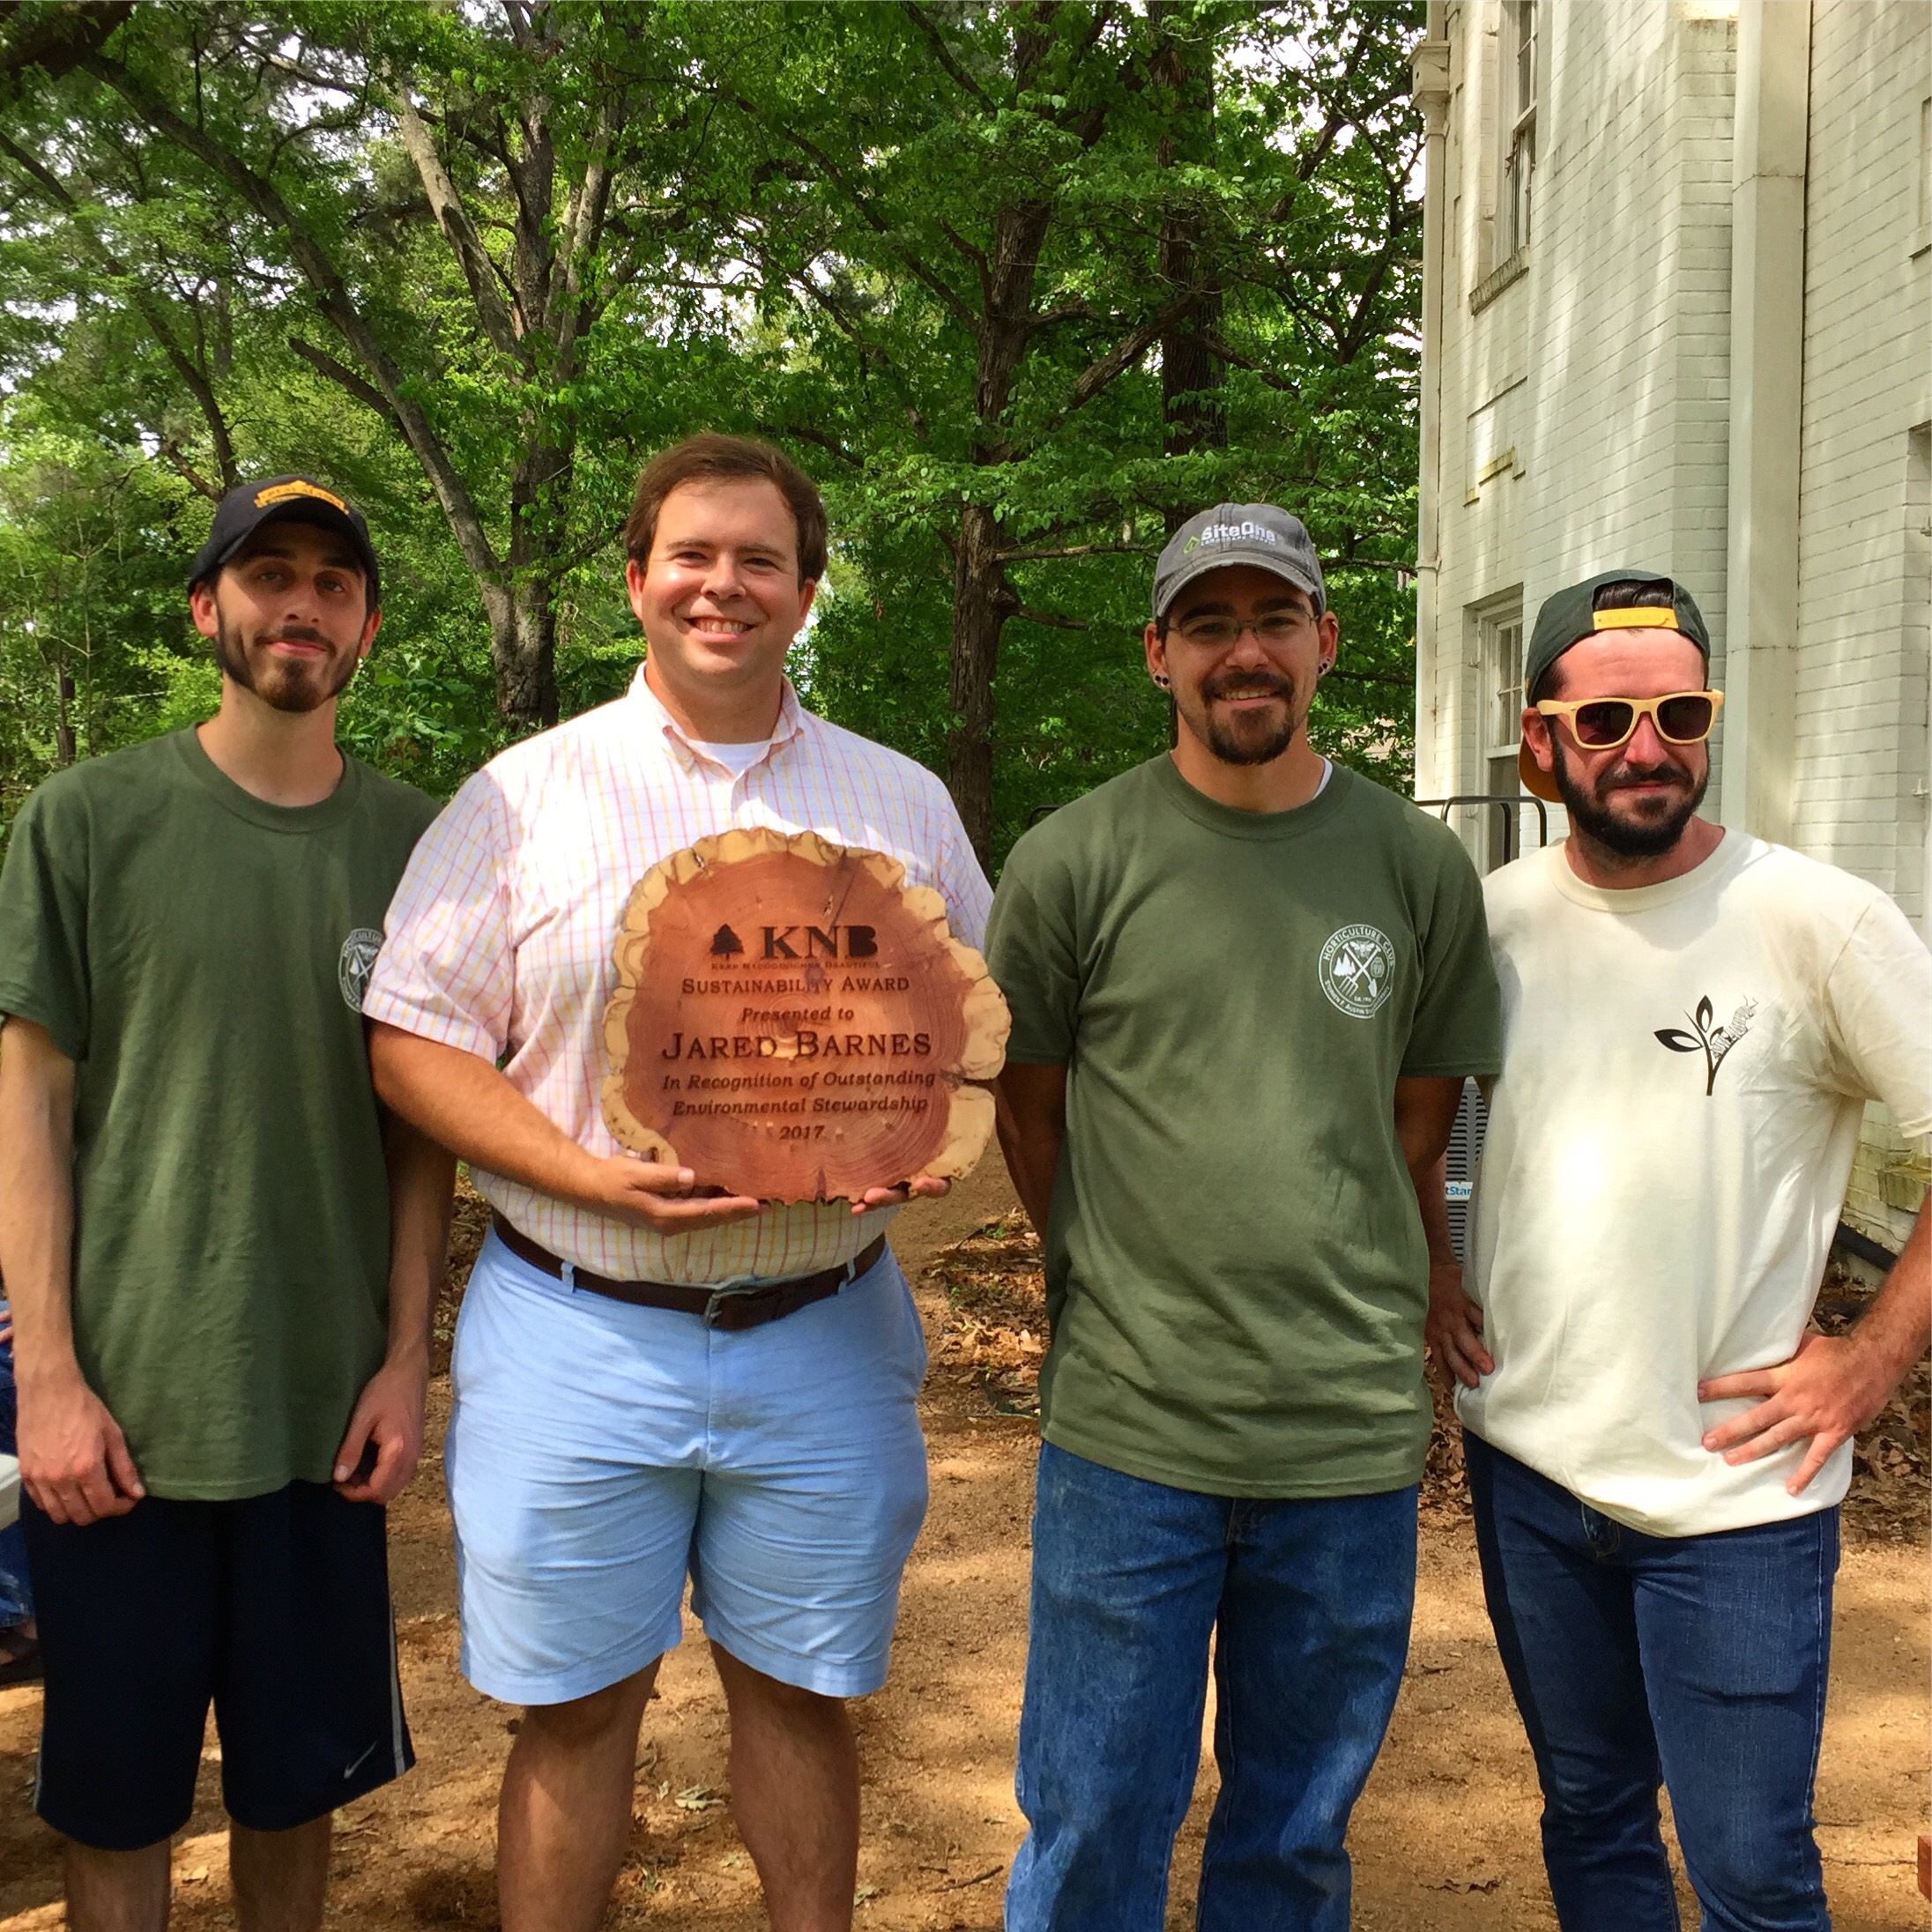 Pictured from left Colin Burke, Jared Barnes, Chisolm Tessem, and John Dilday.